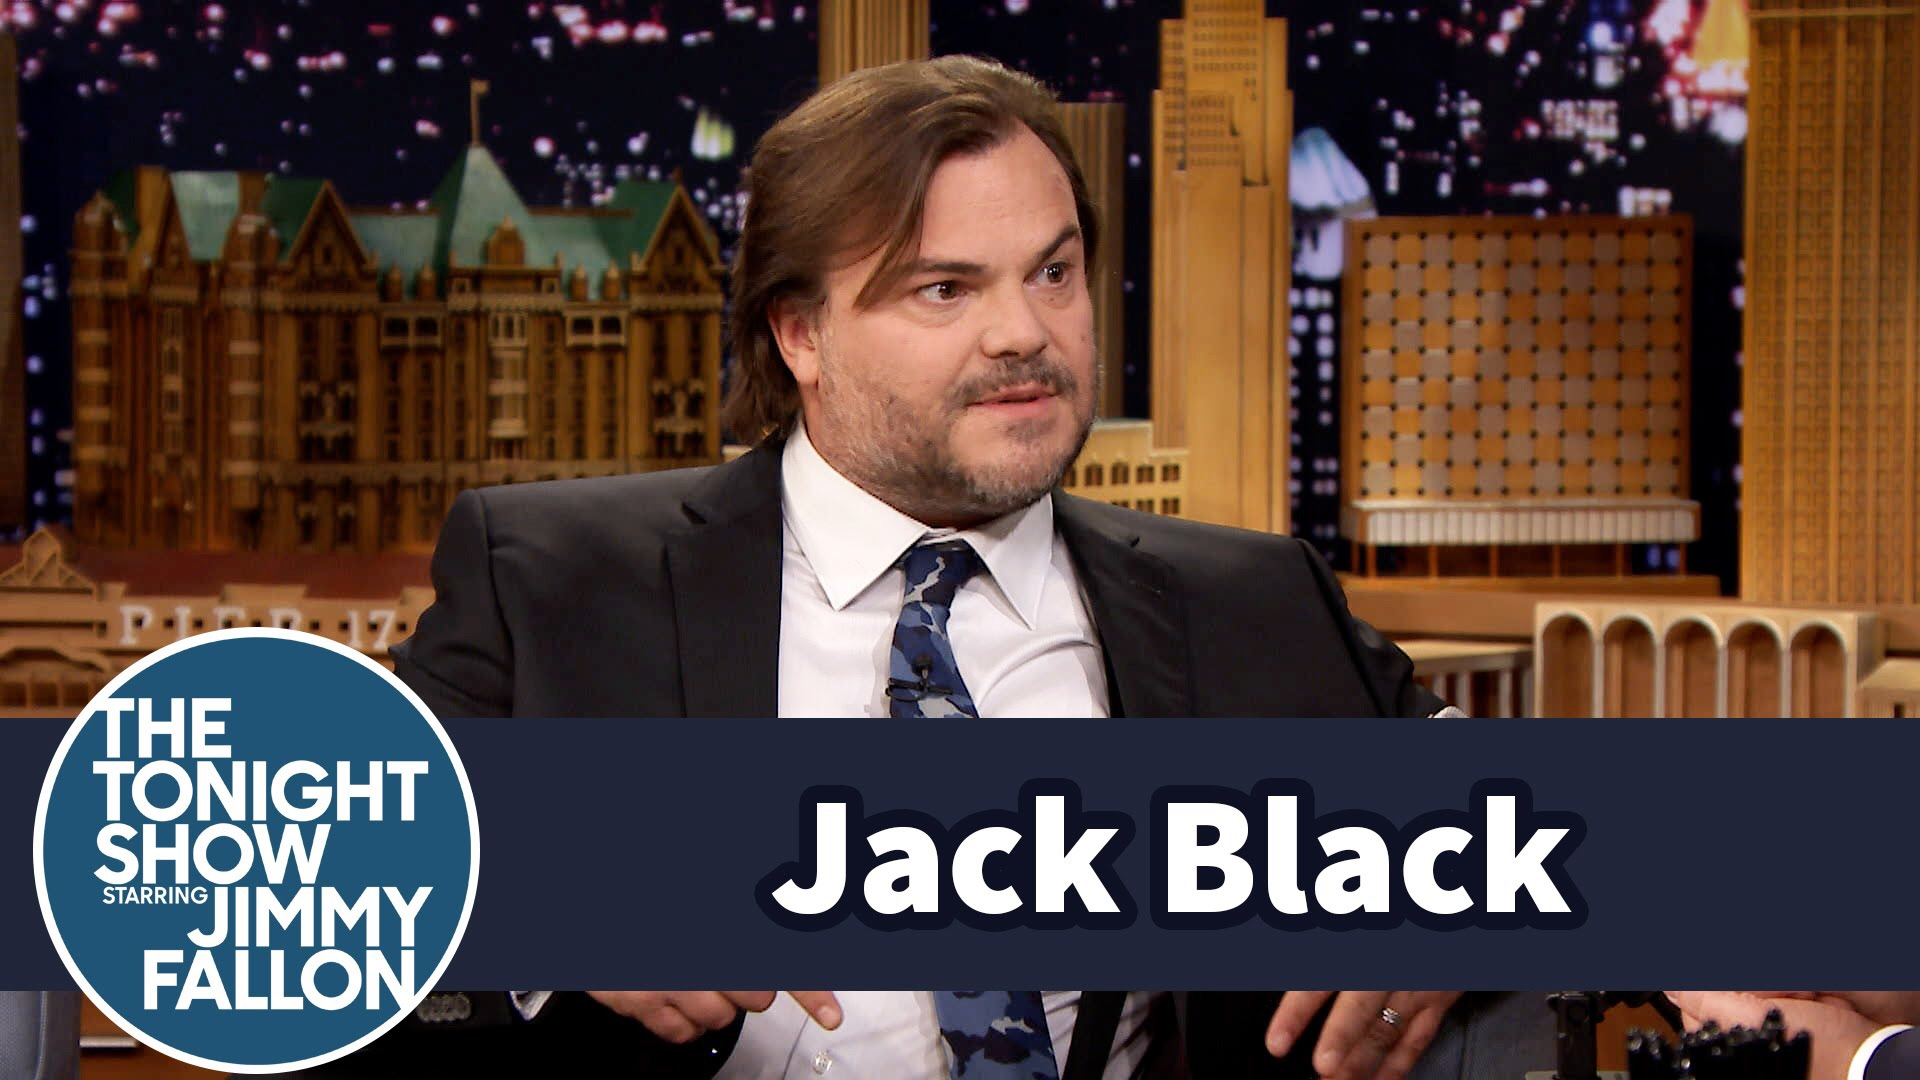 Jack Black's son spent $3,000 on a free to play game